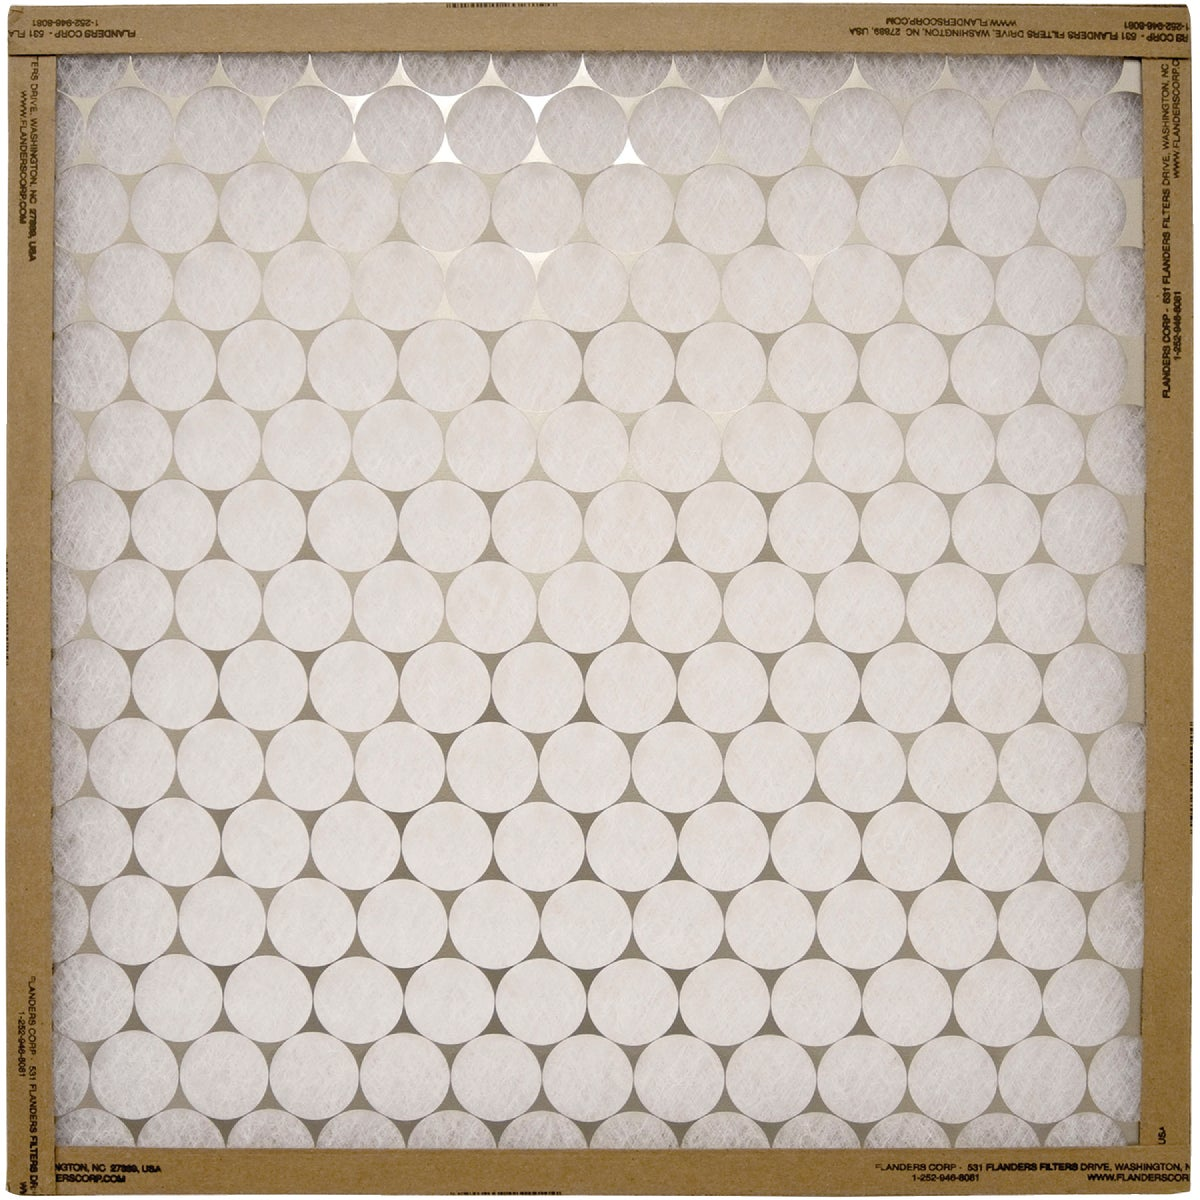 20X25 FURNACE FILTER - 10255.012025 by Flanders Corp